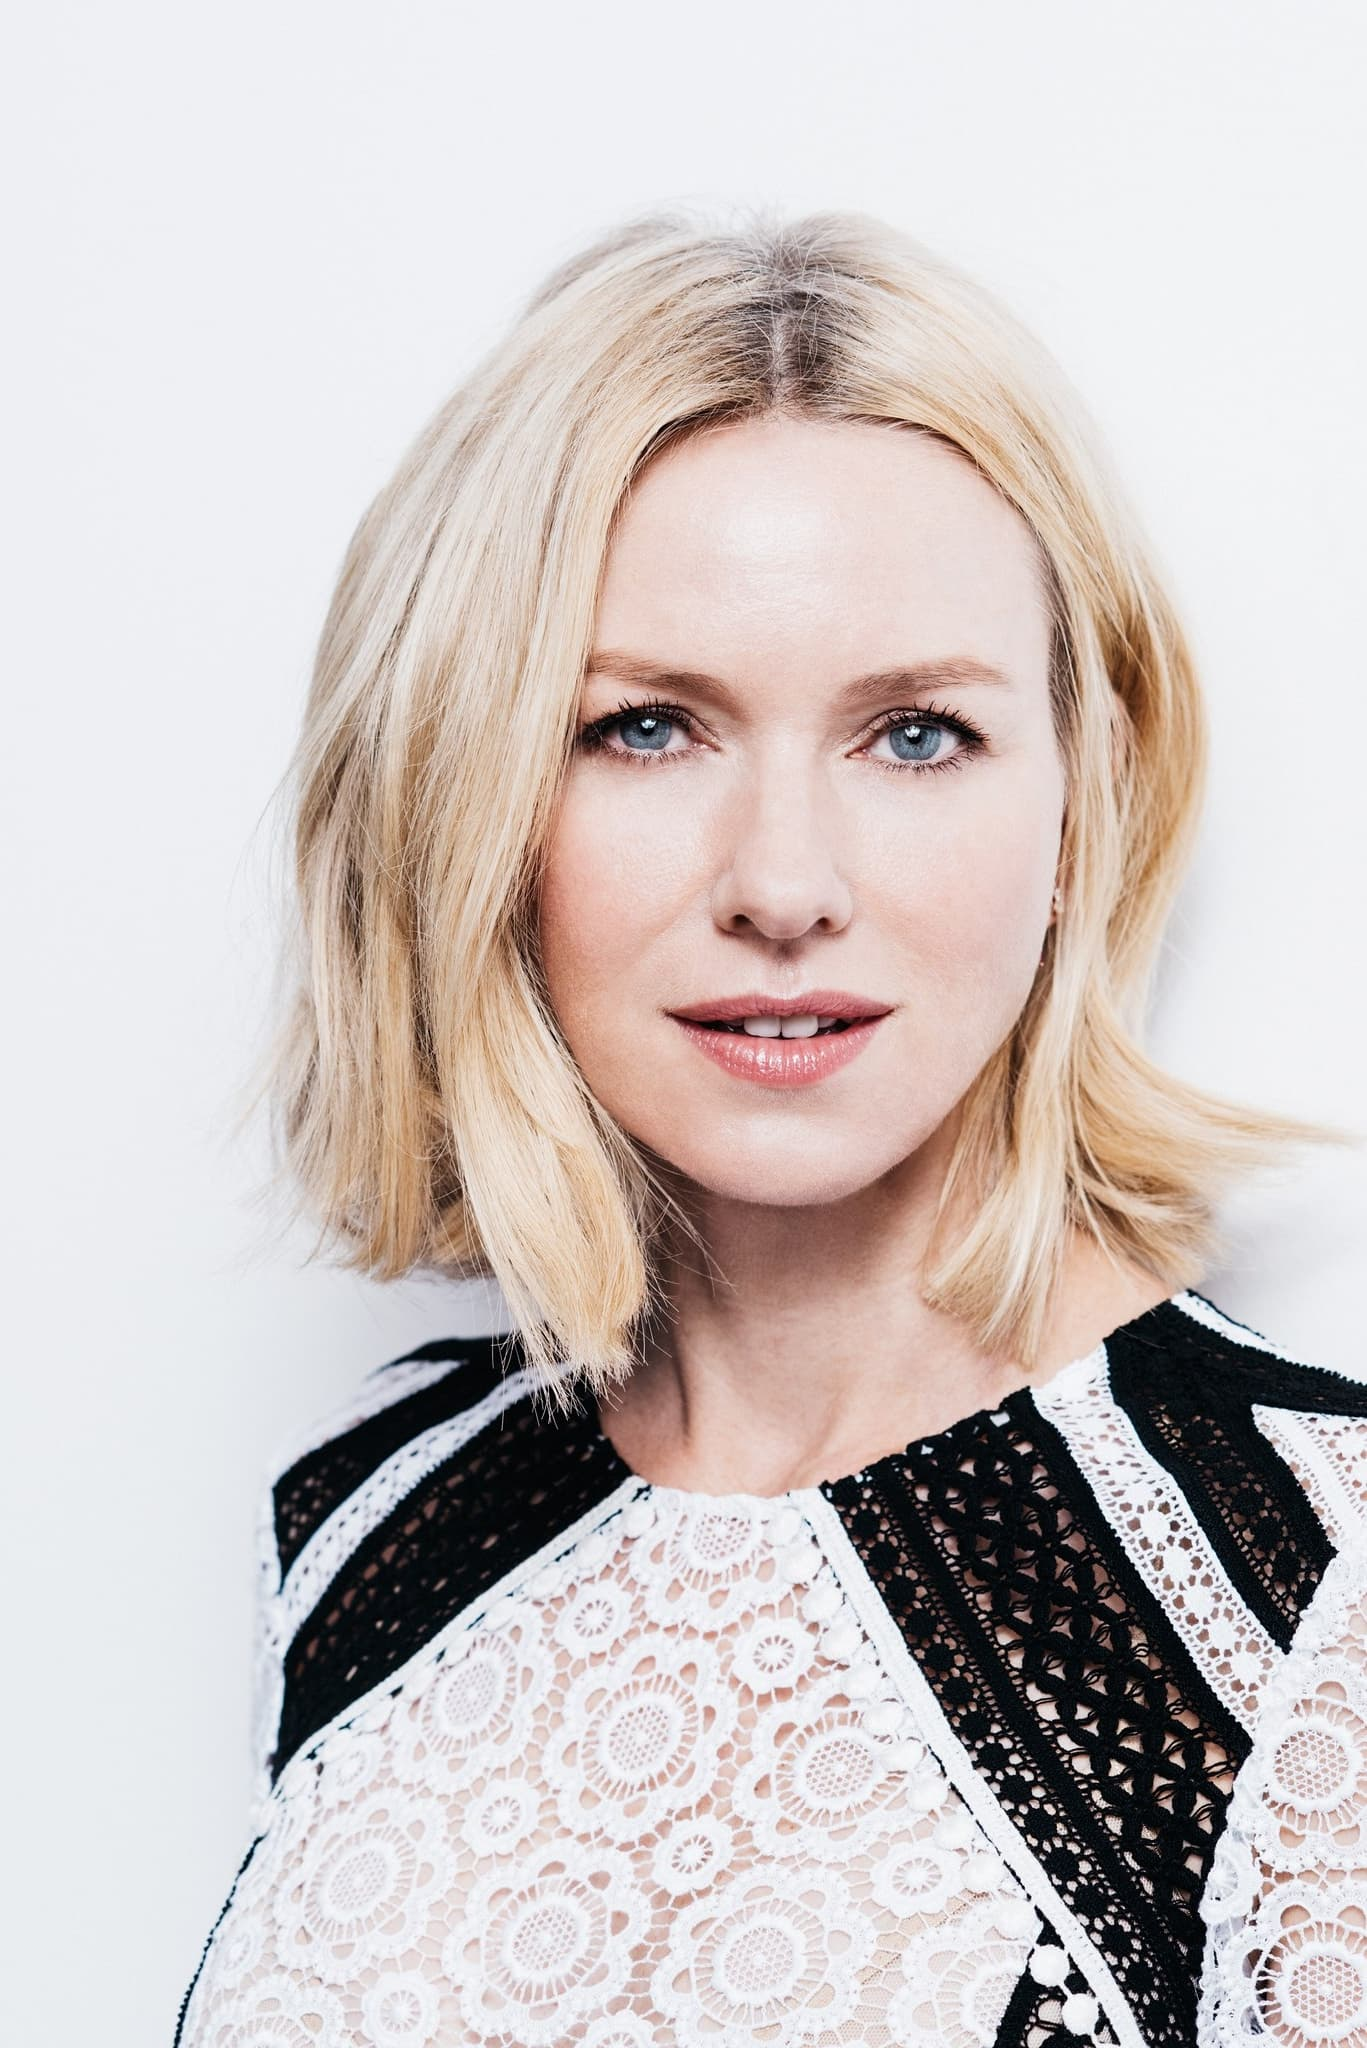 Cars 2 Wallpaper For Phone 15 Naomi Watts Wallpapers High Quality Resolution Download